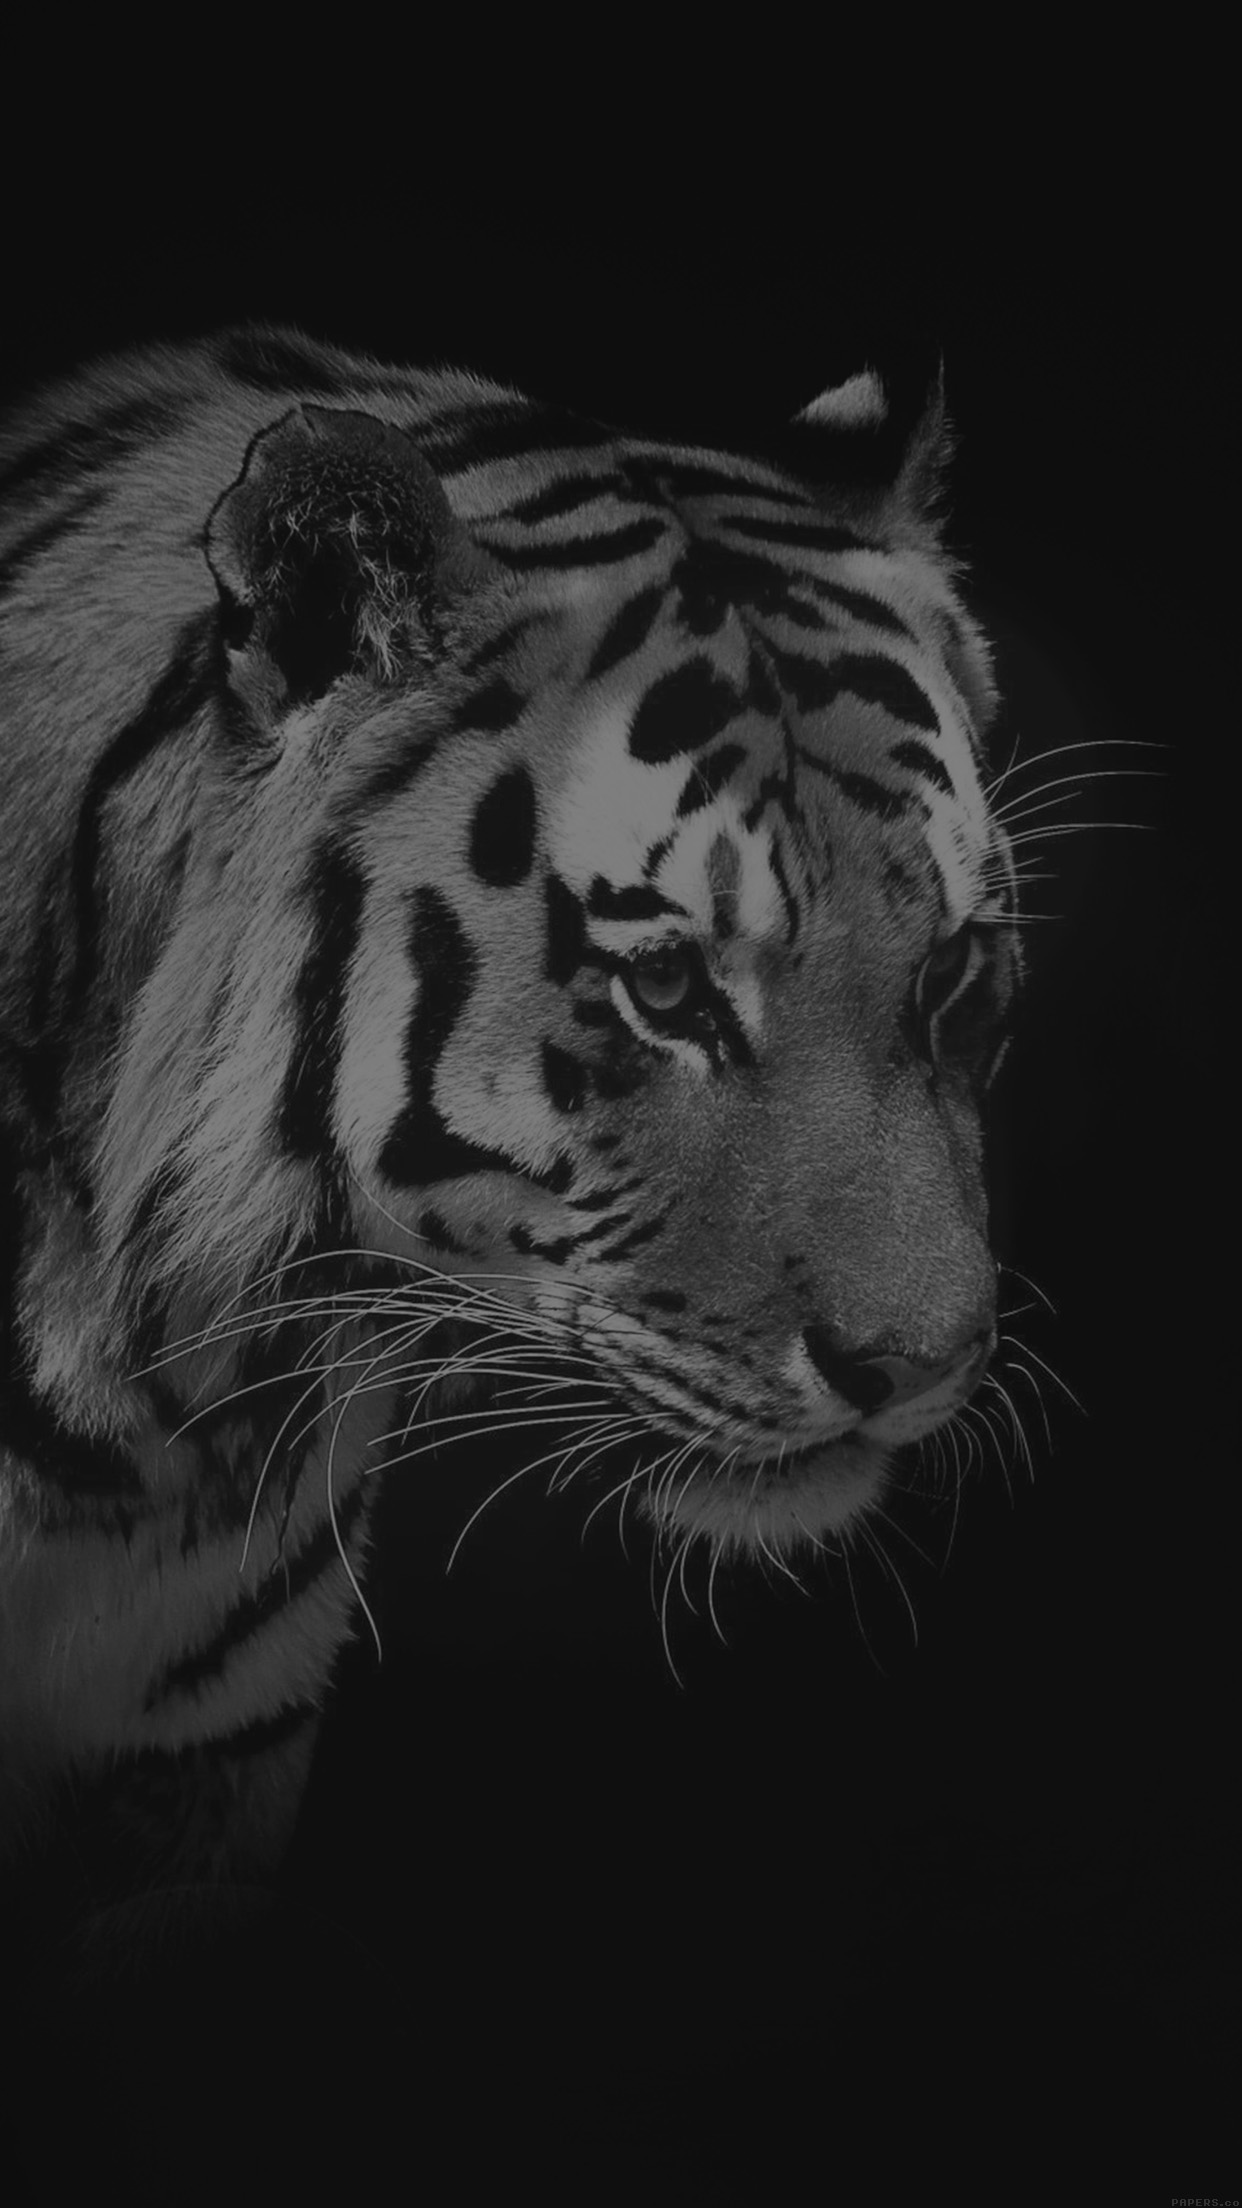 Tiger Dark Bw Animal Love Nature Android Wallpaper